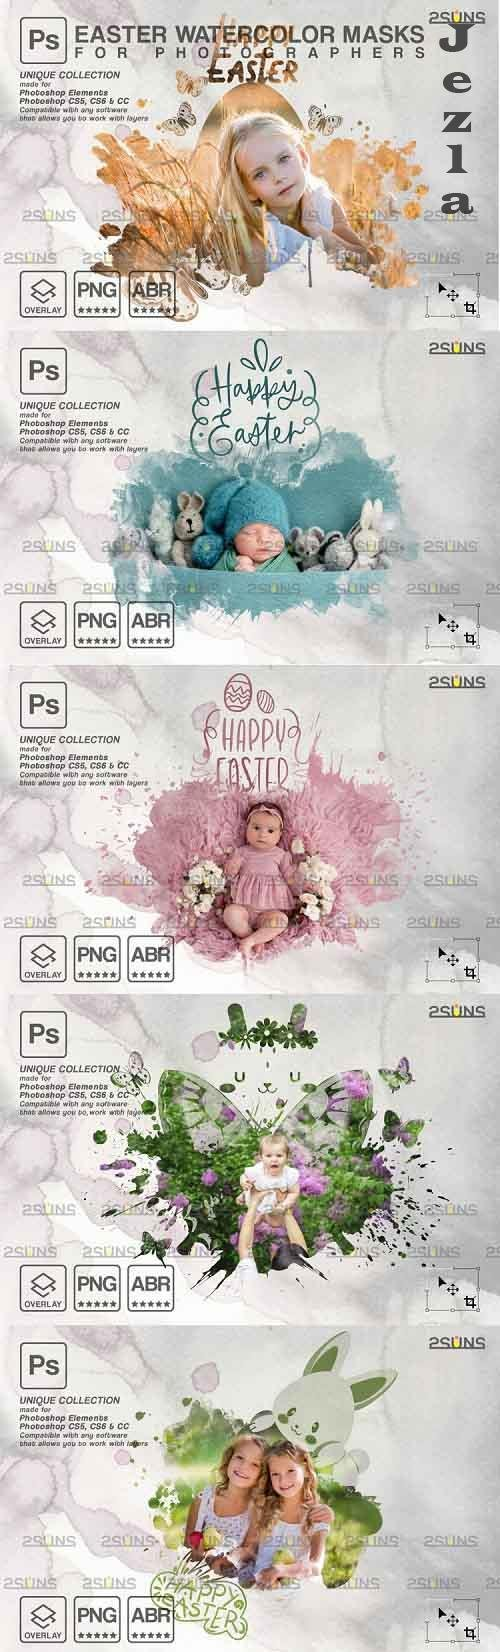 Easter Watercolor overlay & Photoshop overlay V2 - 1224217